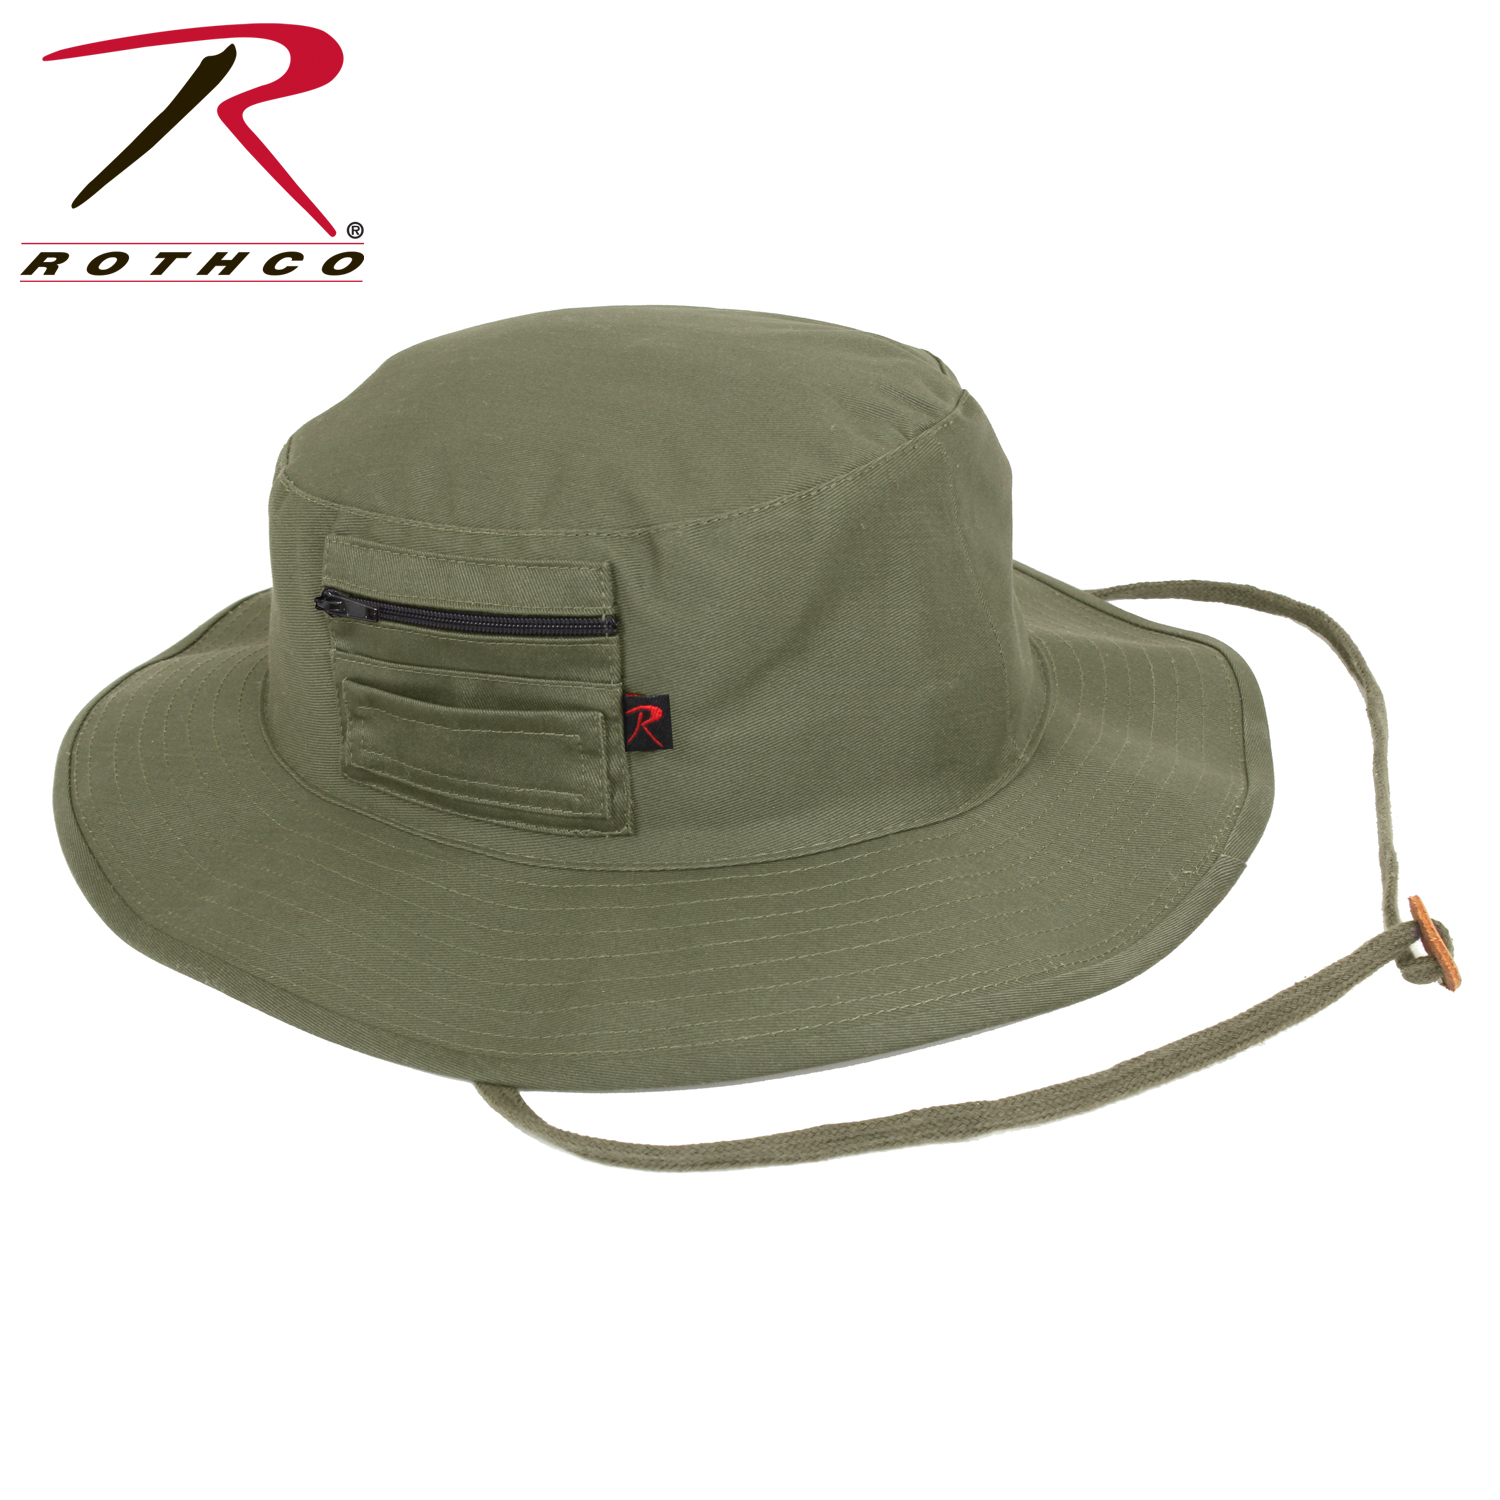 Rothco Adjustable Boonie Hat 3792070d533